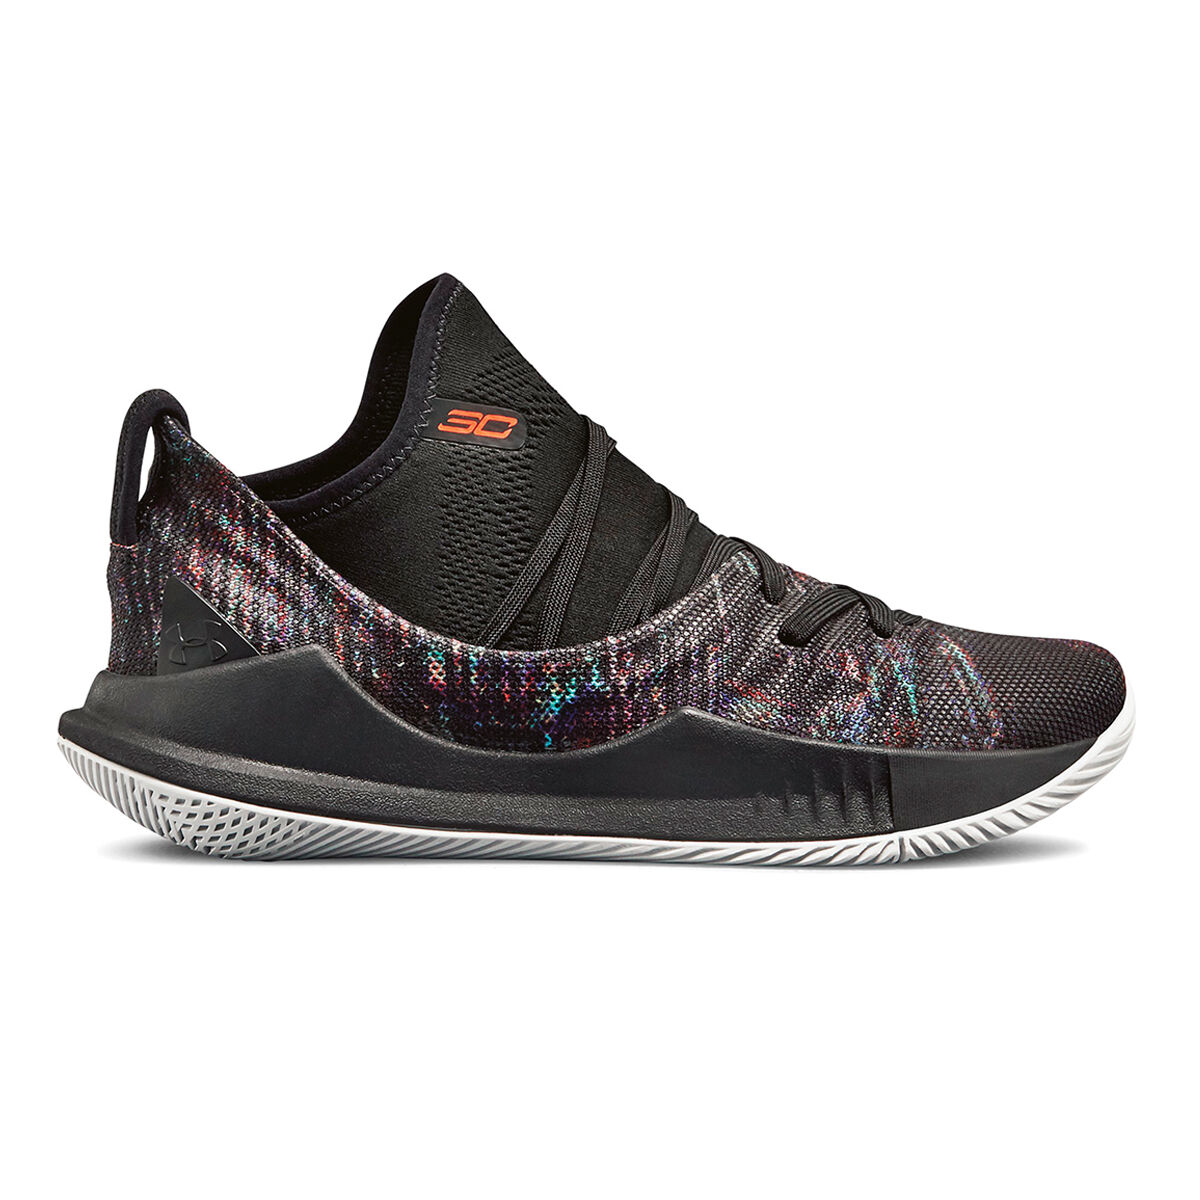 Under Armour Curry 5 Kids Basketball Shoes | Rebel Sport